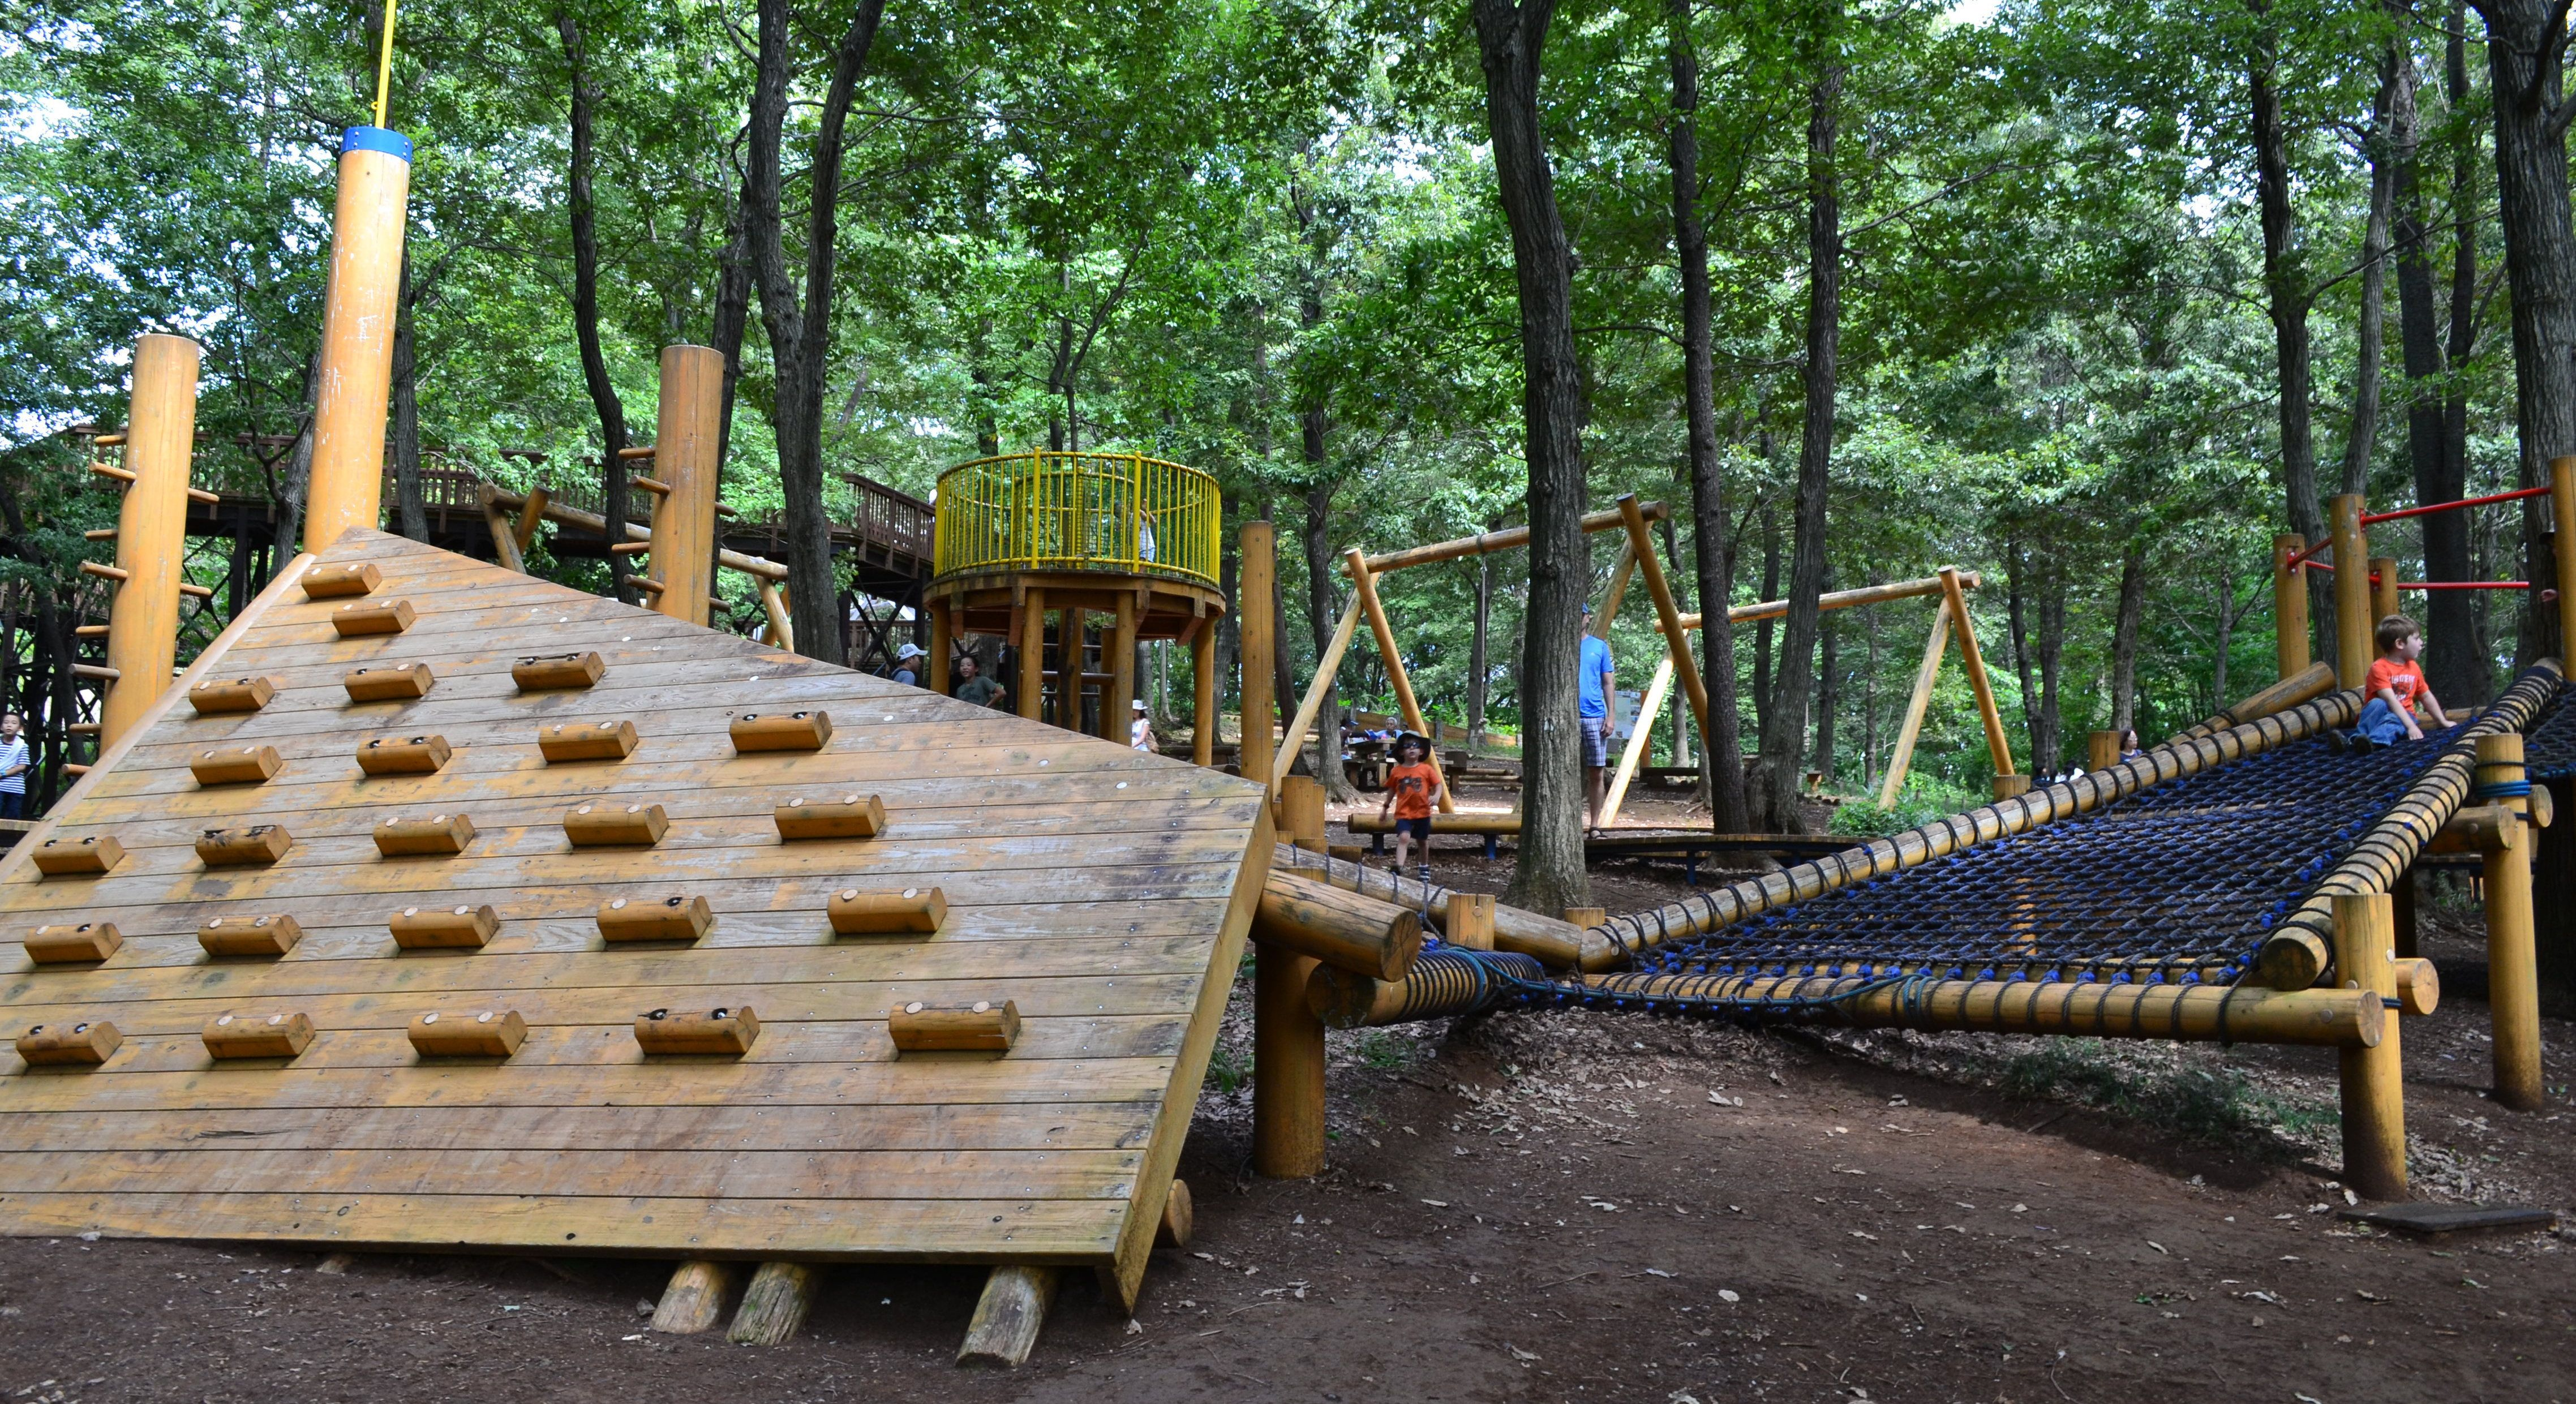 Obstacle Course Park Noyama Kita Backyard Obstacle Course Backyard Diy Backyard Diy backyard obstacle course for adults